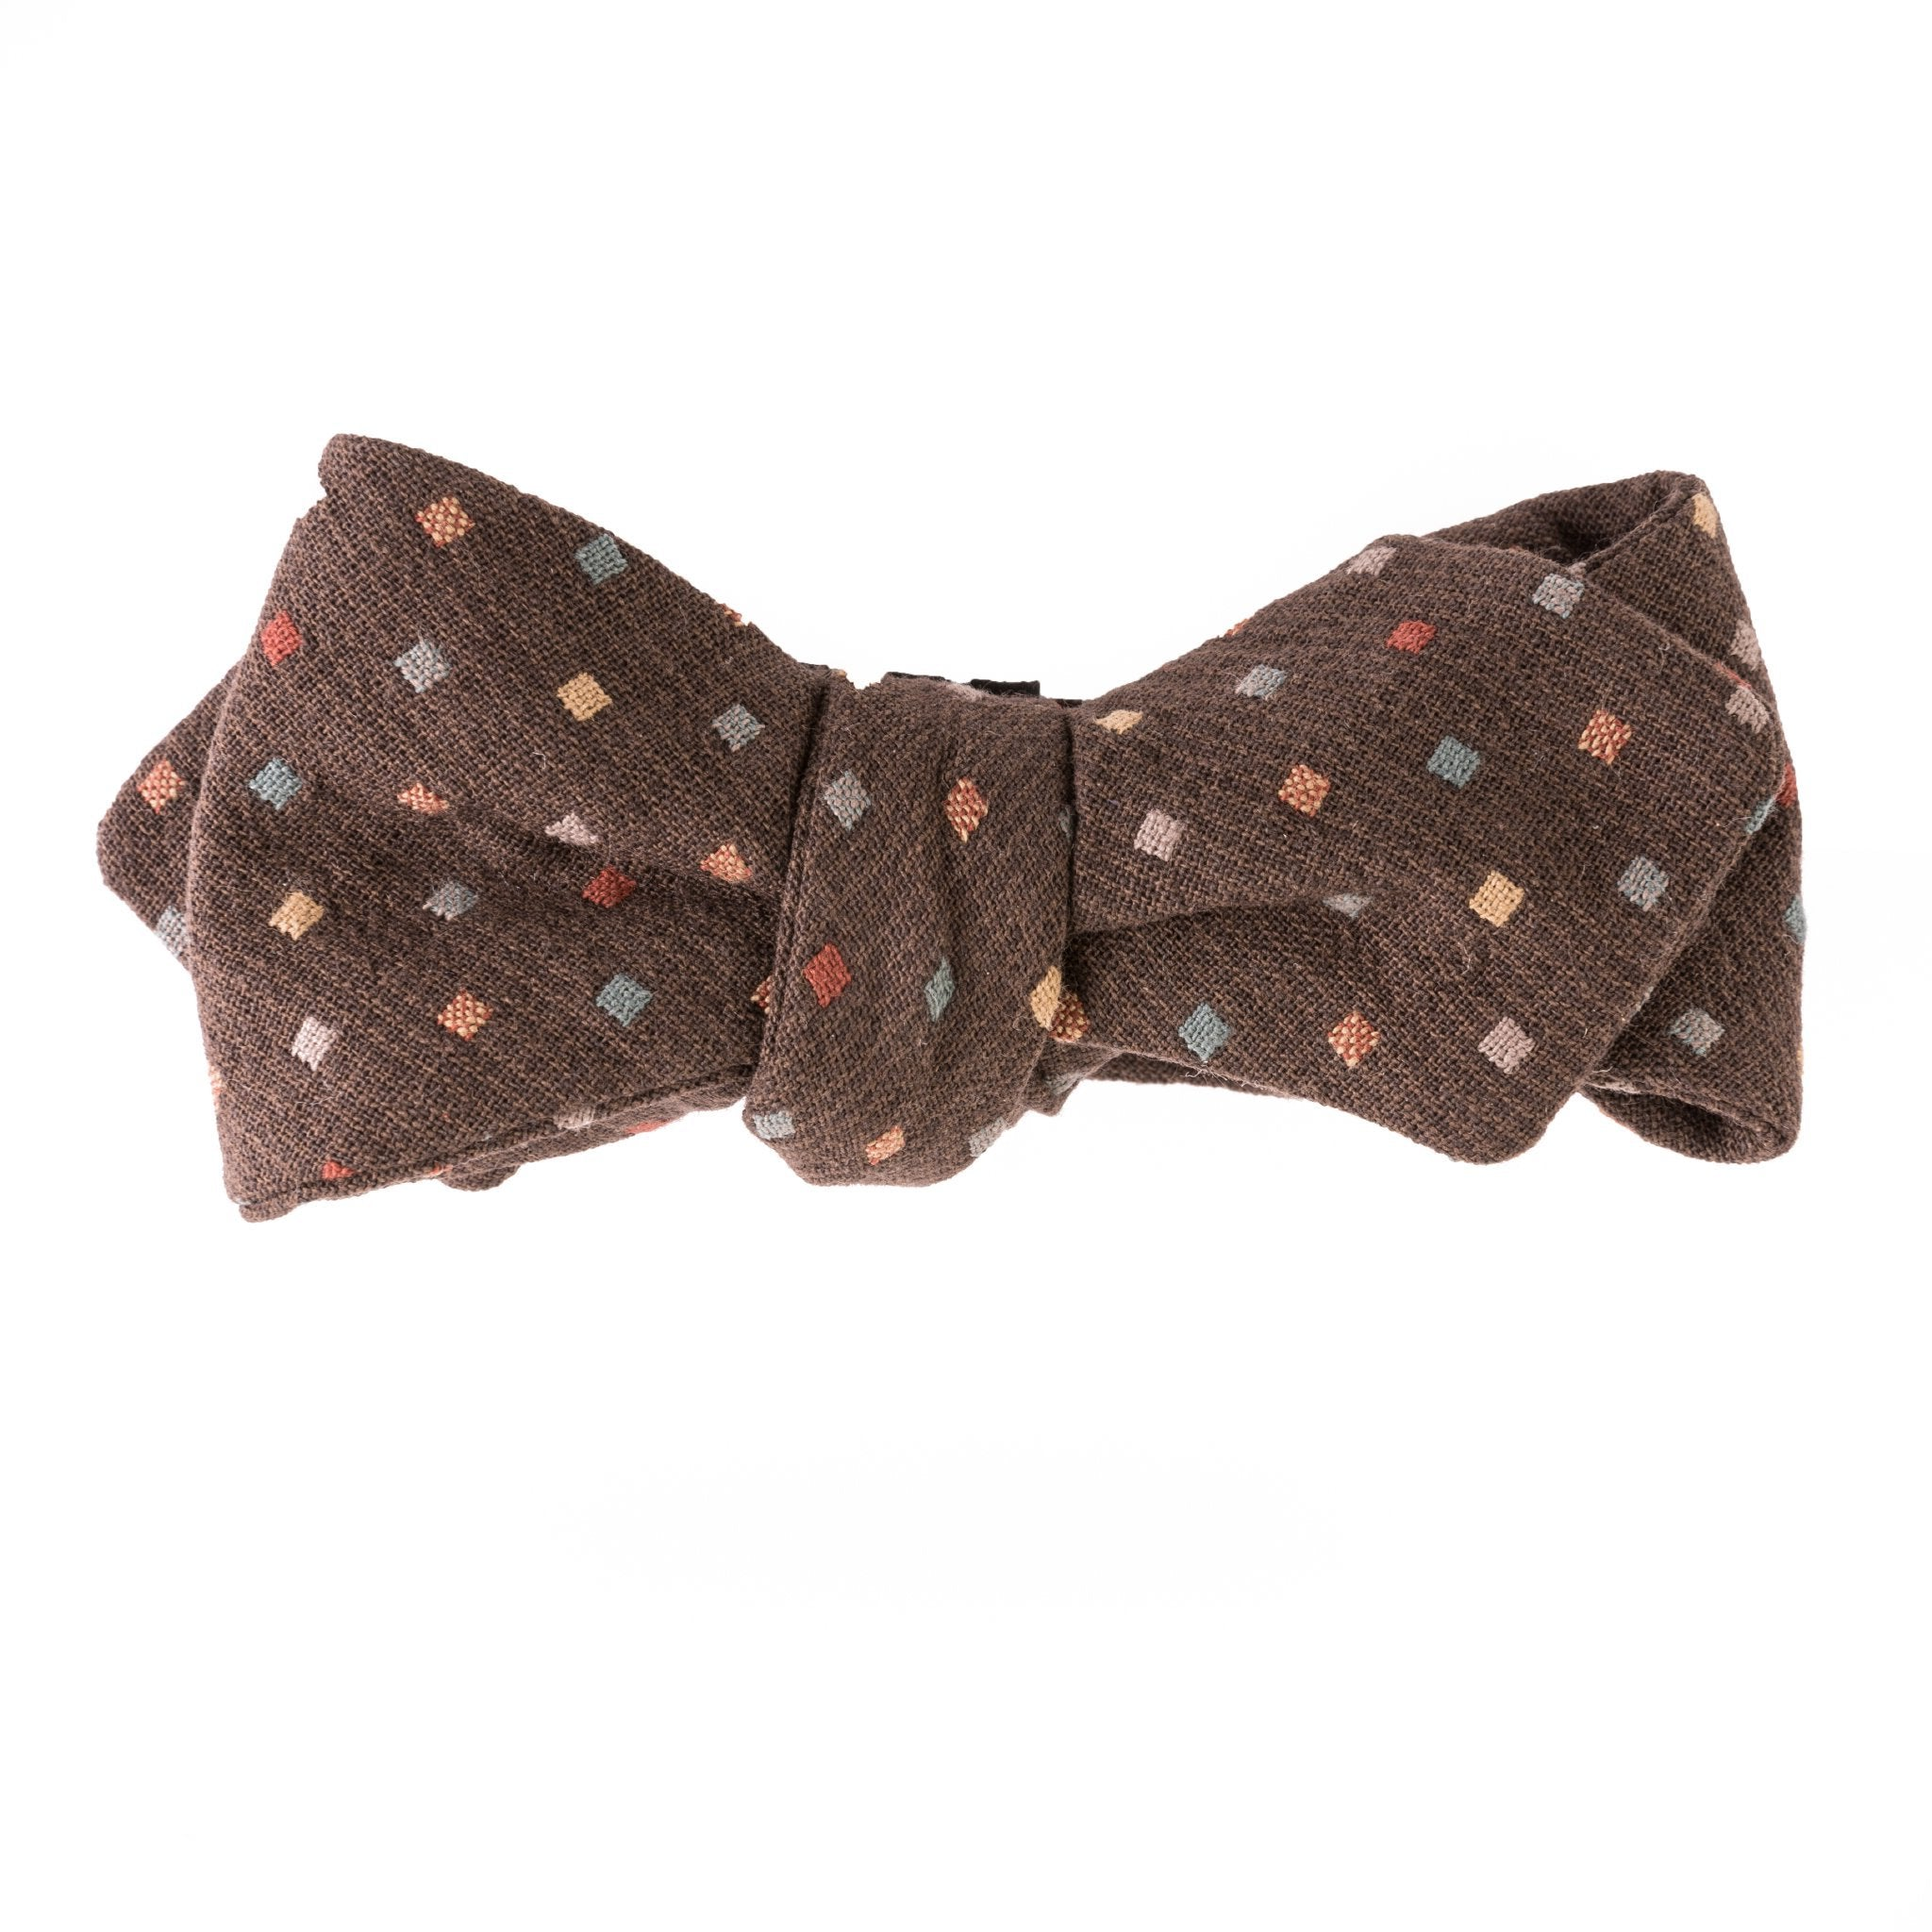 Japanese Confetti Bow Tie (3 Colors Available)